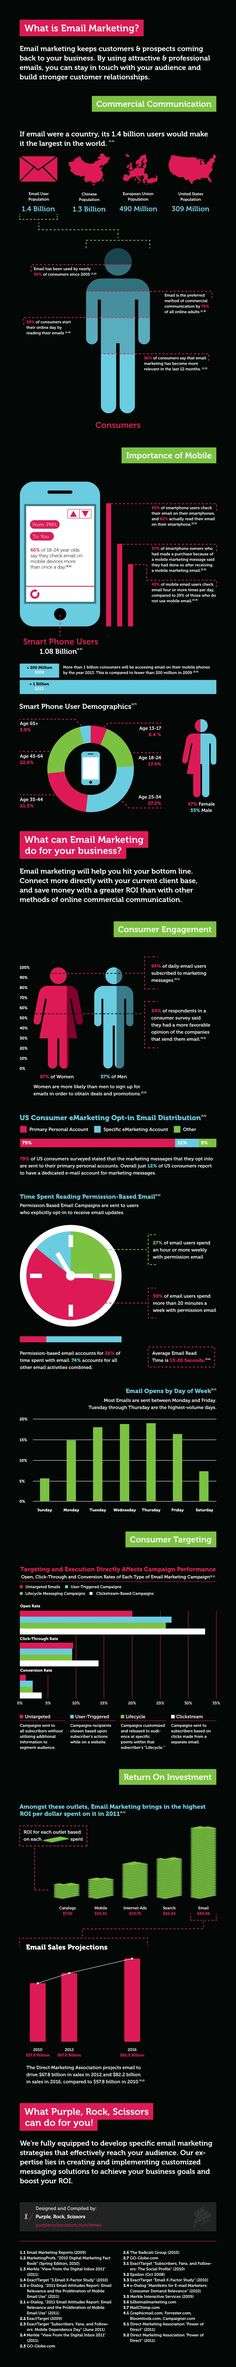 What is email marketing? #infographic